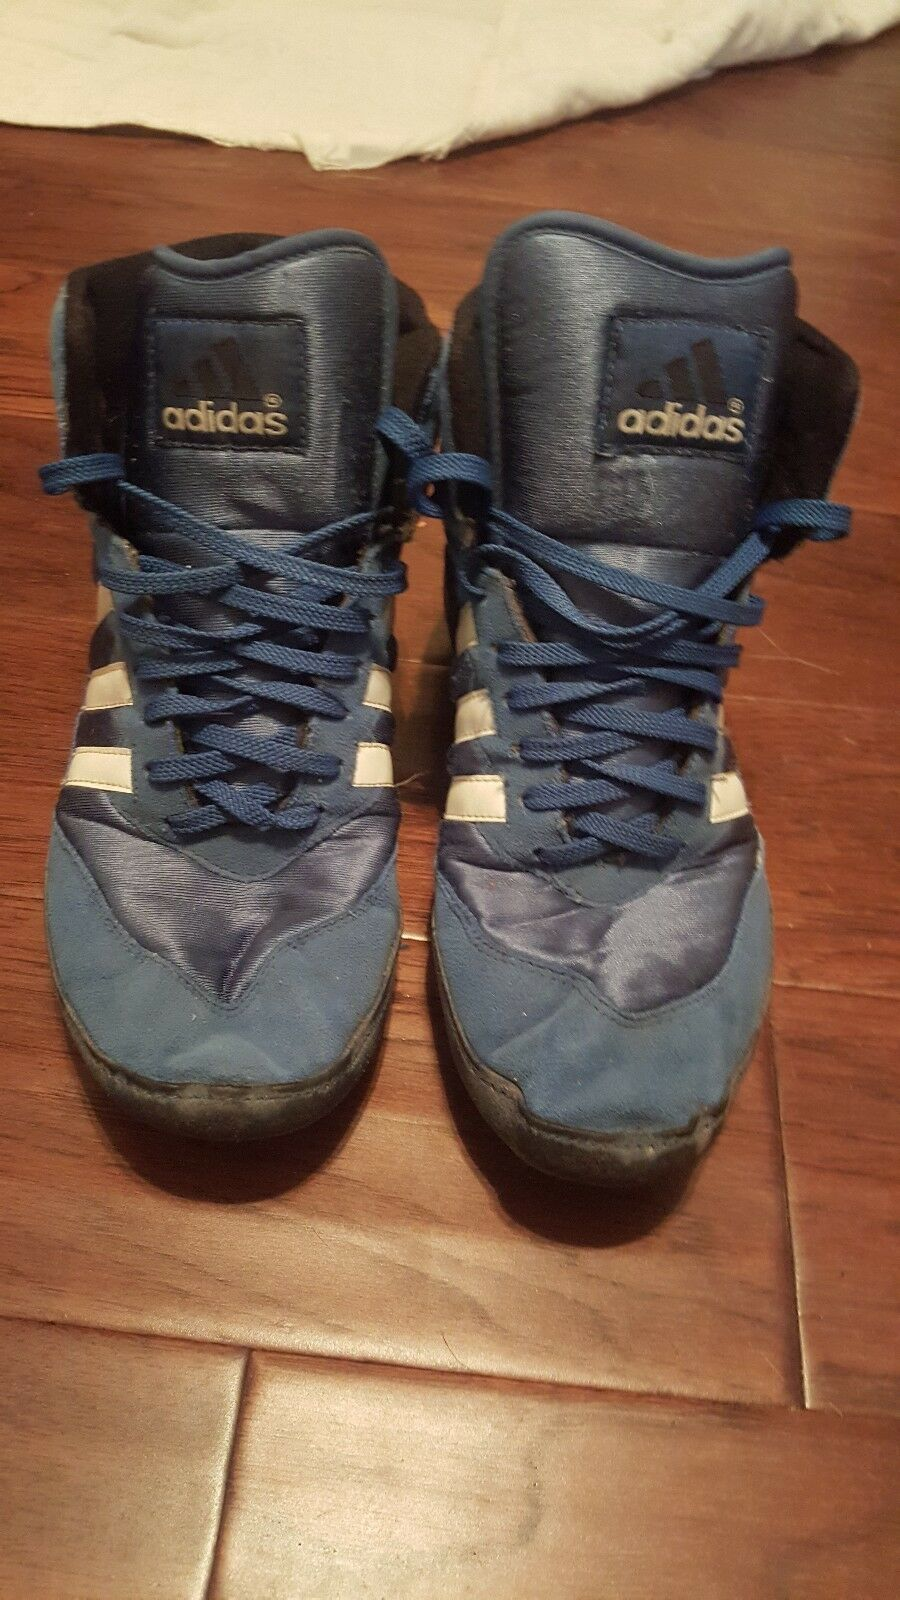 a5b0ed81573 Adidas Absolute bluee Wrestling shoes Size 10 1995 great condition Vintage